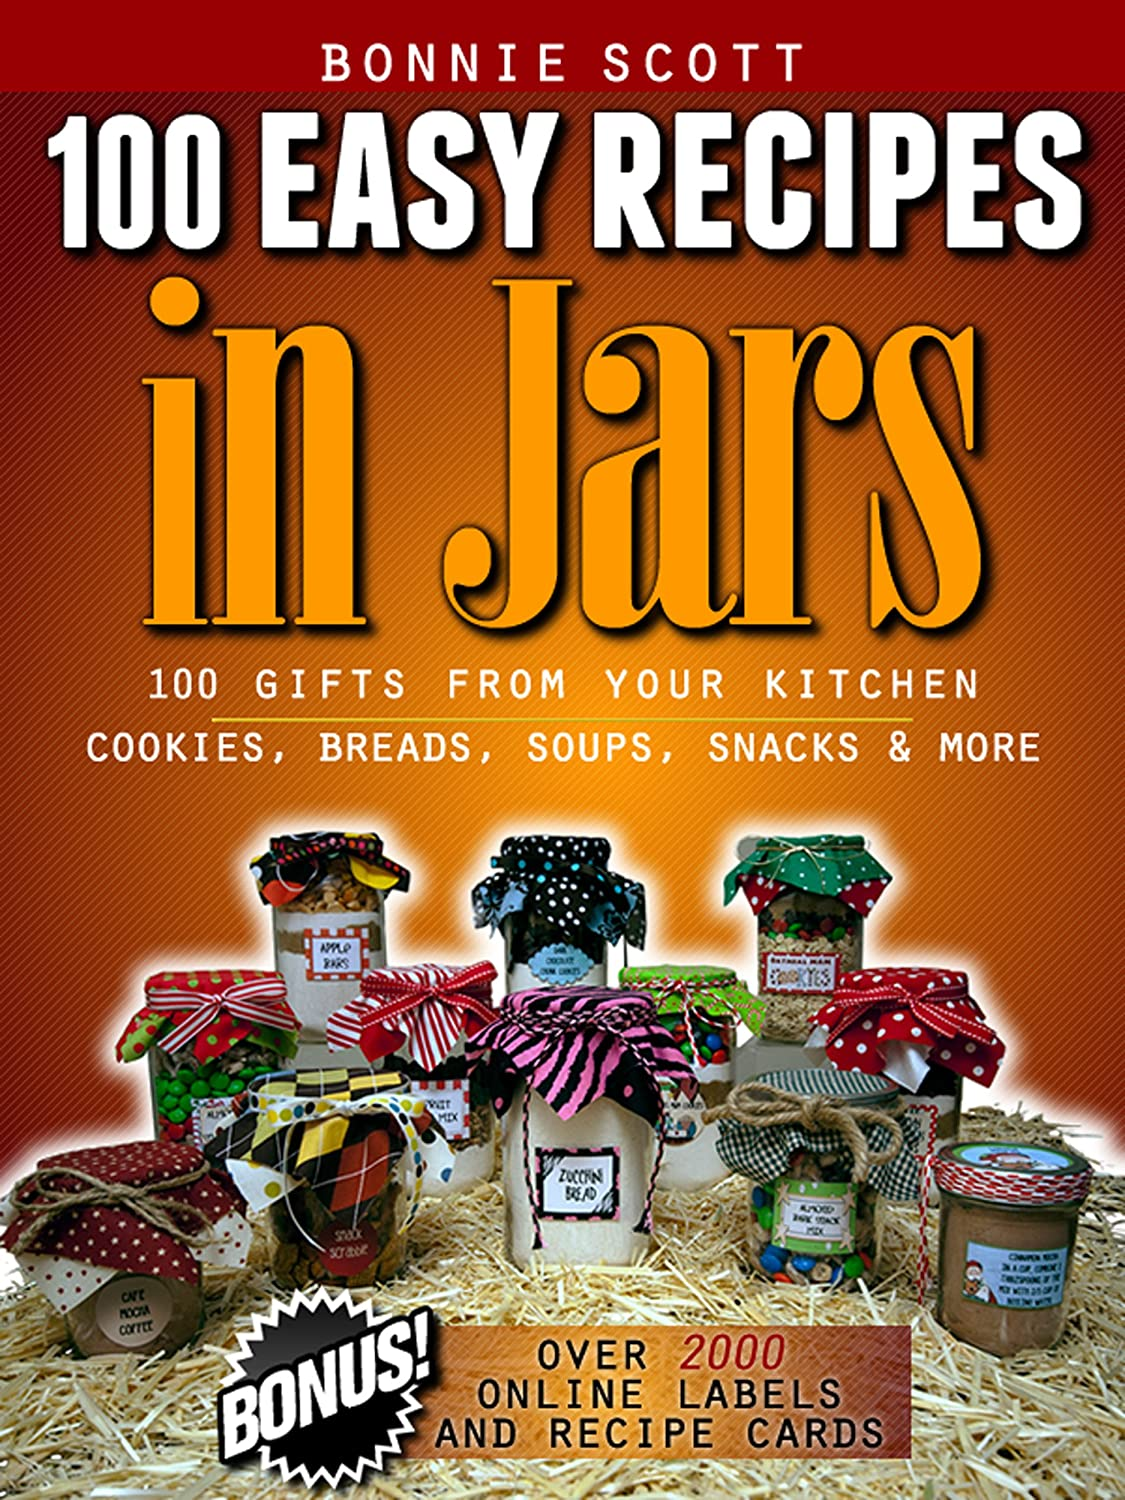 http://www.amazon.com/100-Easy-Recipes-In-Jars-ebook/dp/B0094RZ28A/ref=as_sl_pc_ss_til?tag=lettfromahome-20&linkCode=w01&linkId=3Q3SCN5BPROQLUC3&creativeASIN=B0094RZ28A